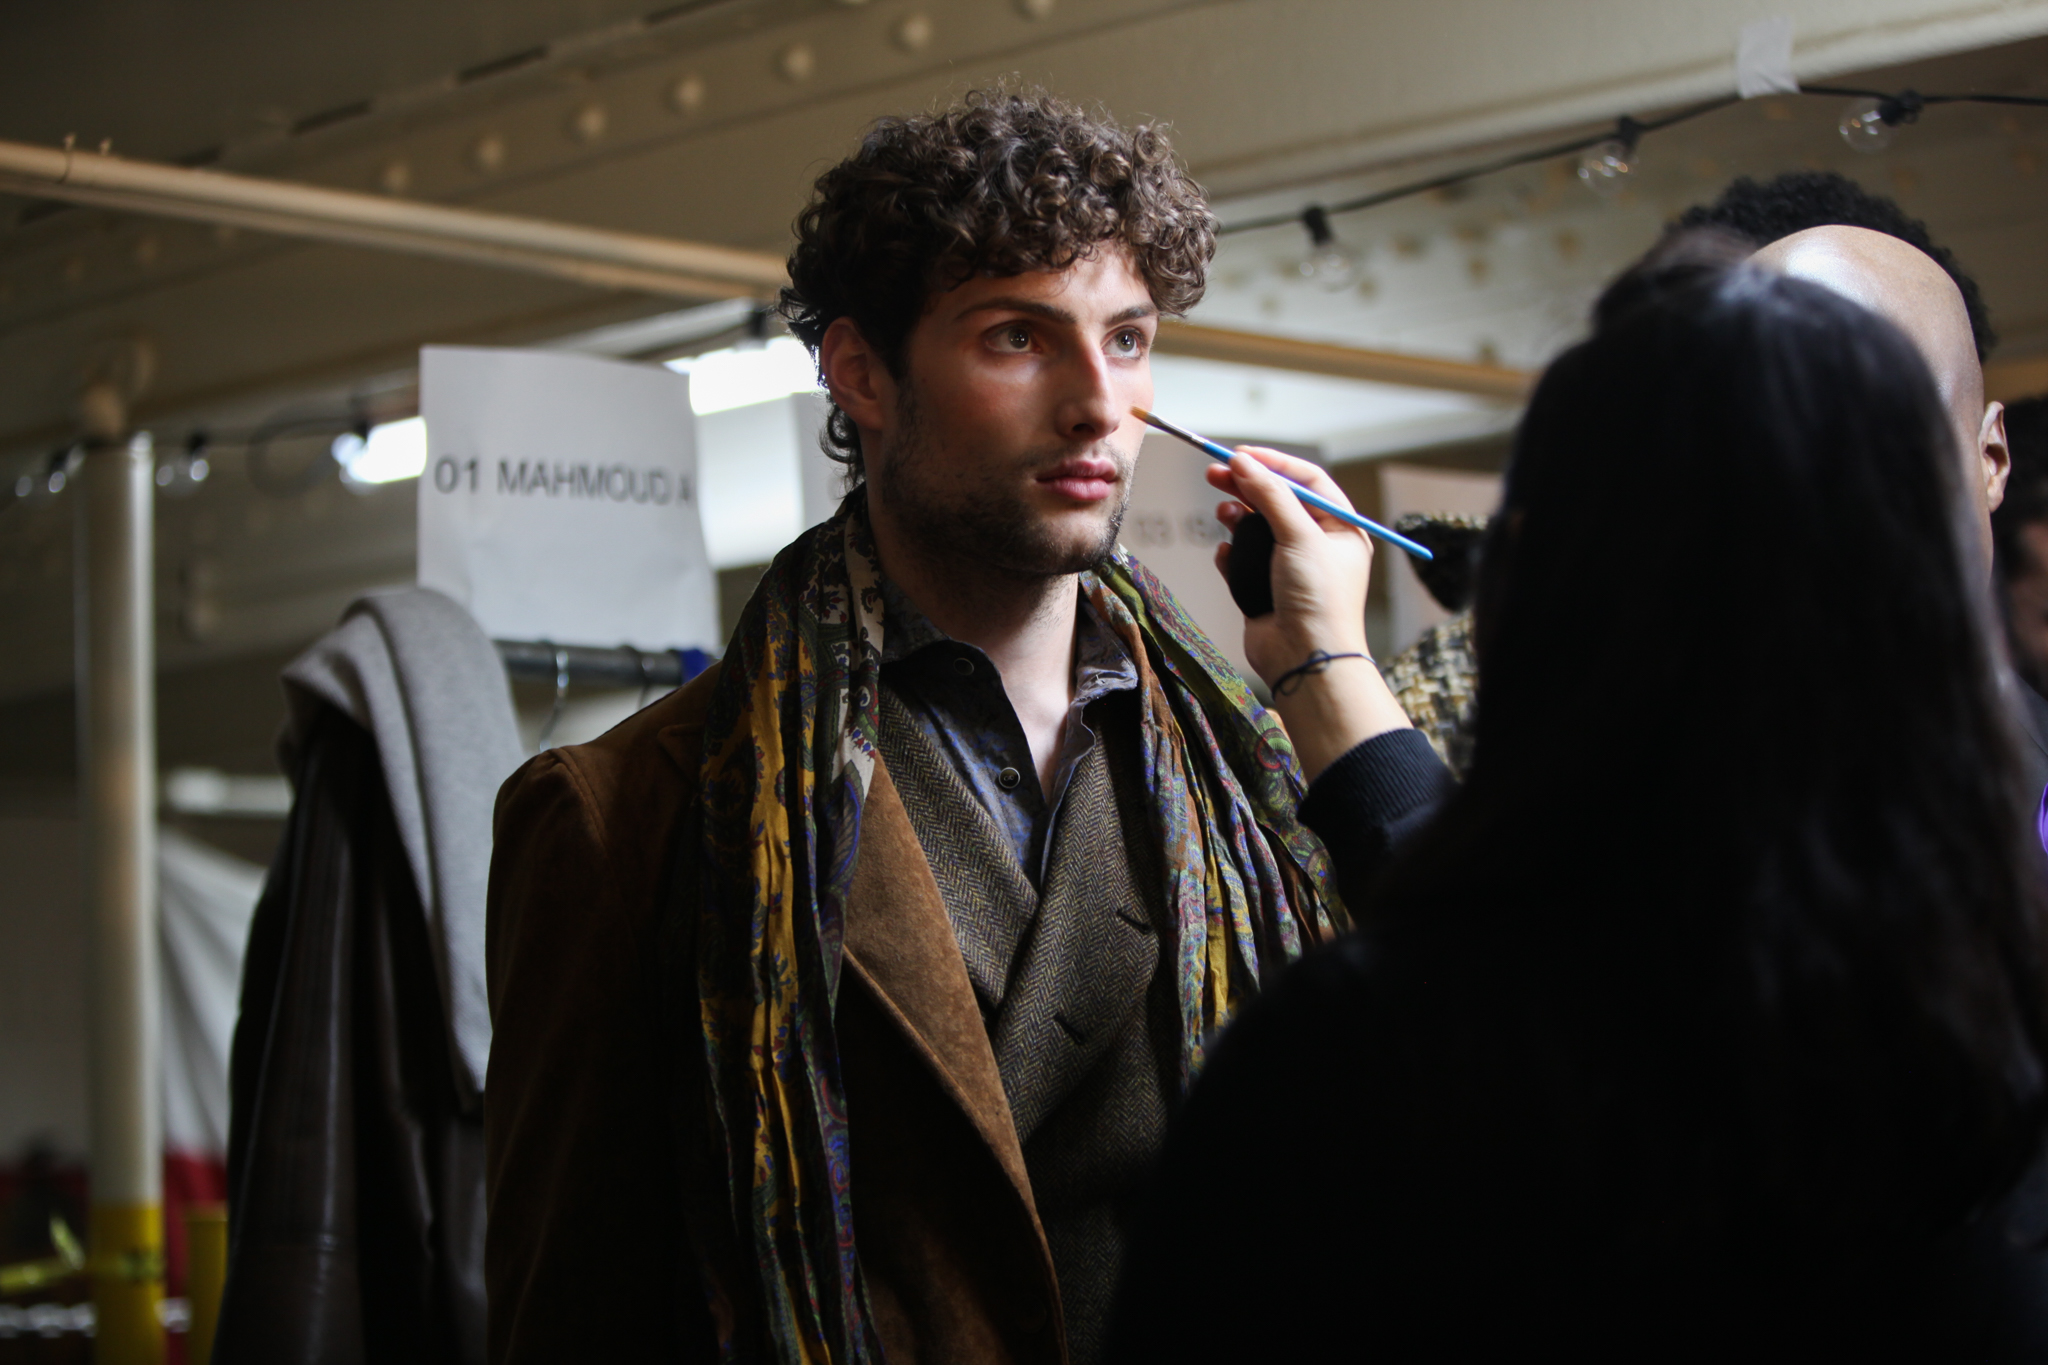 Backstage at Joseph Abboud Mens Fall 2019